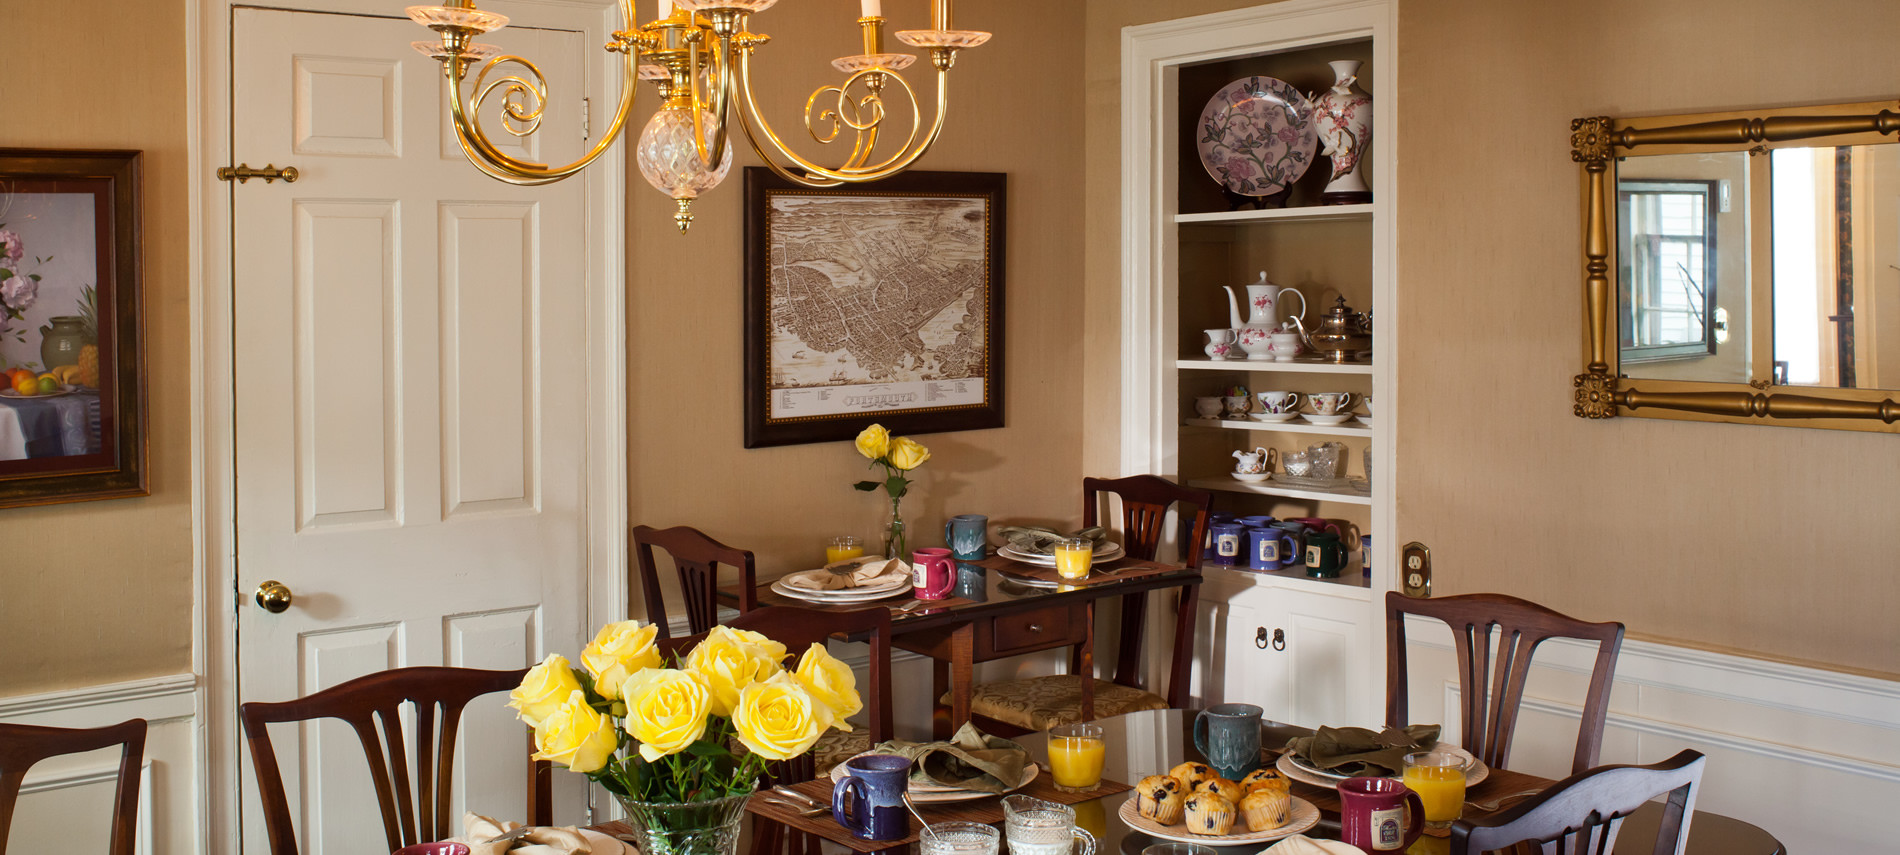 View of the Dining room with the table set for breakfast, juice, coffee, muffins and a vase with yellow roses